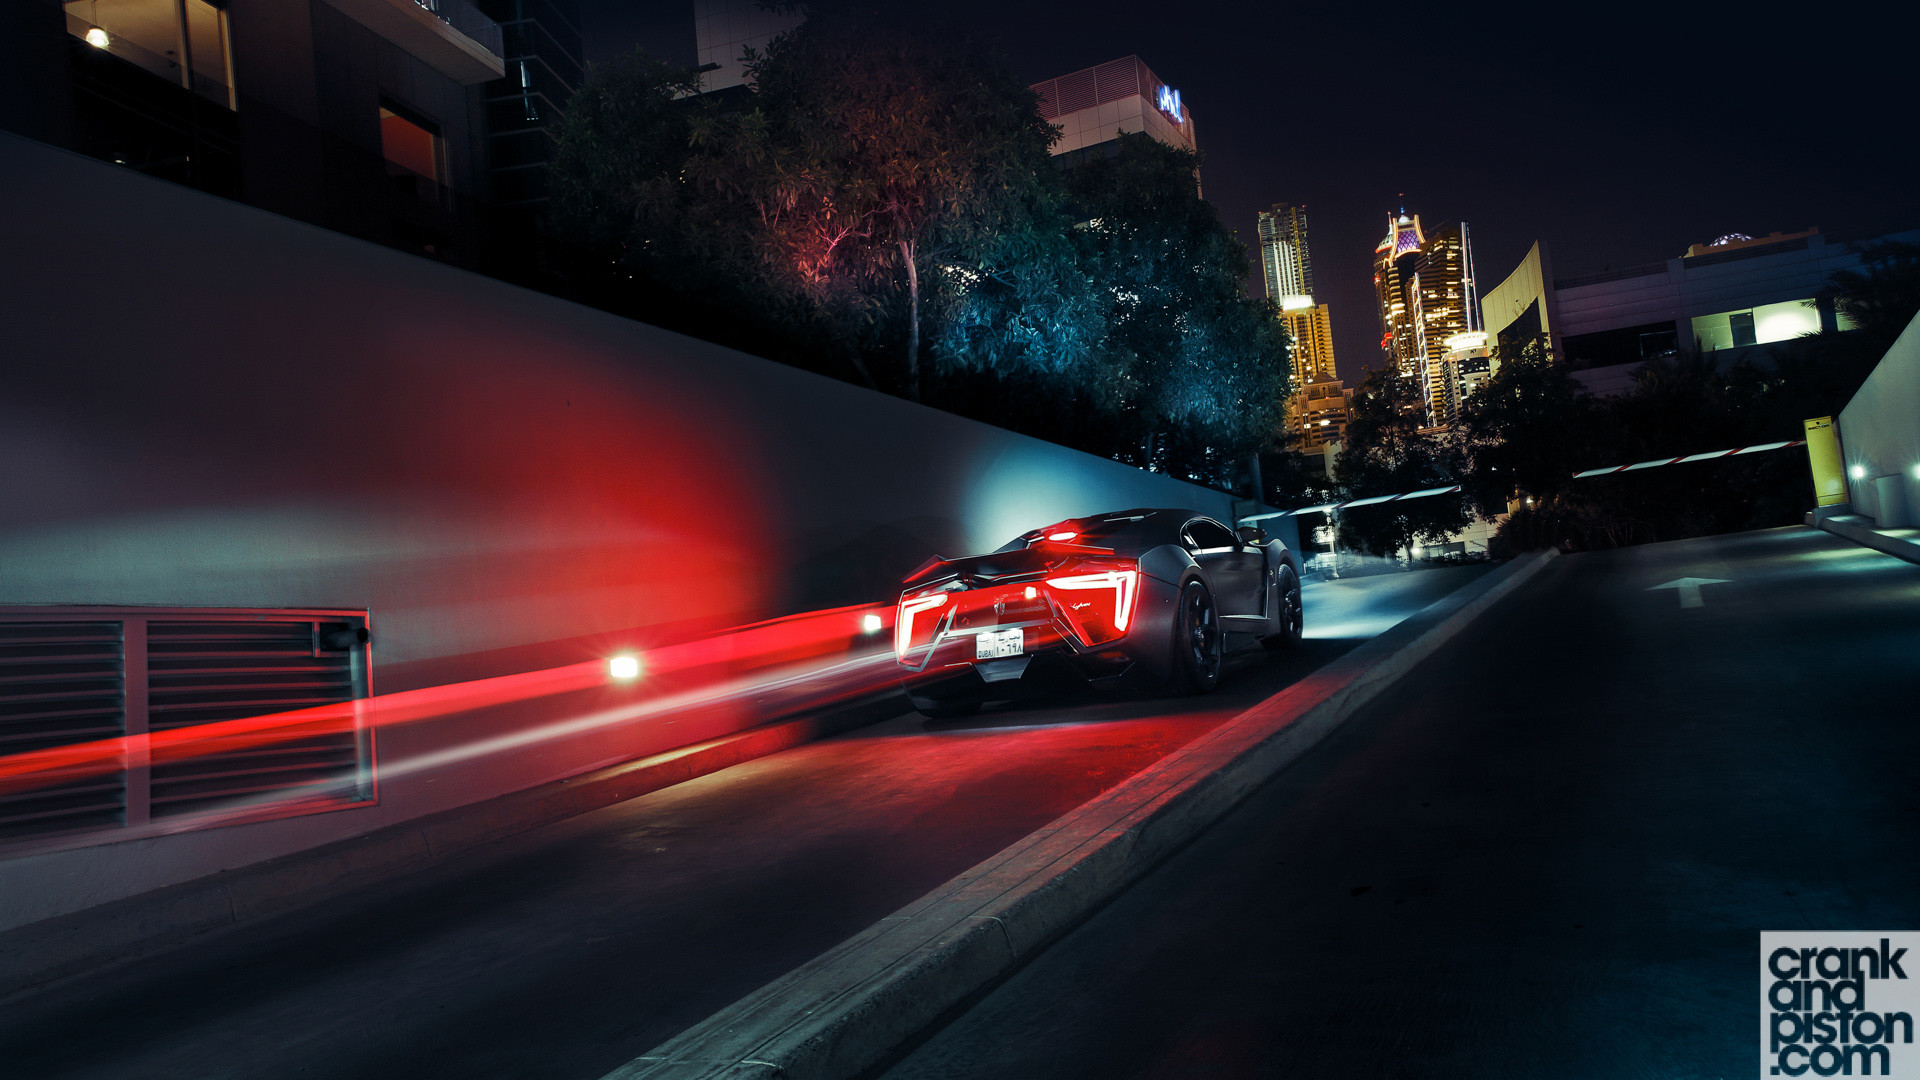 Sport Collection Hd Wallpapers 2048x2048 Sport Wallpapers: Lykan Hypersport Wallpapers (66+ Images